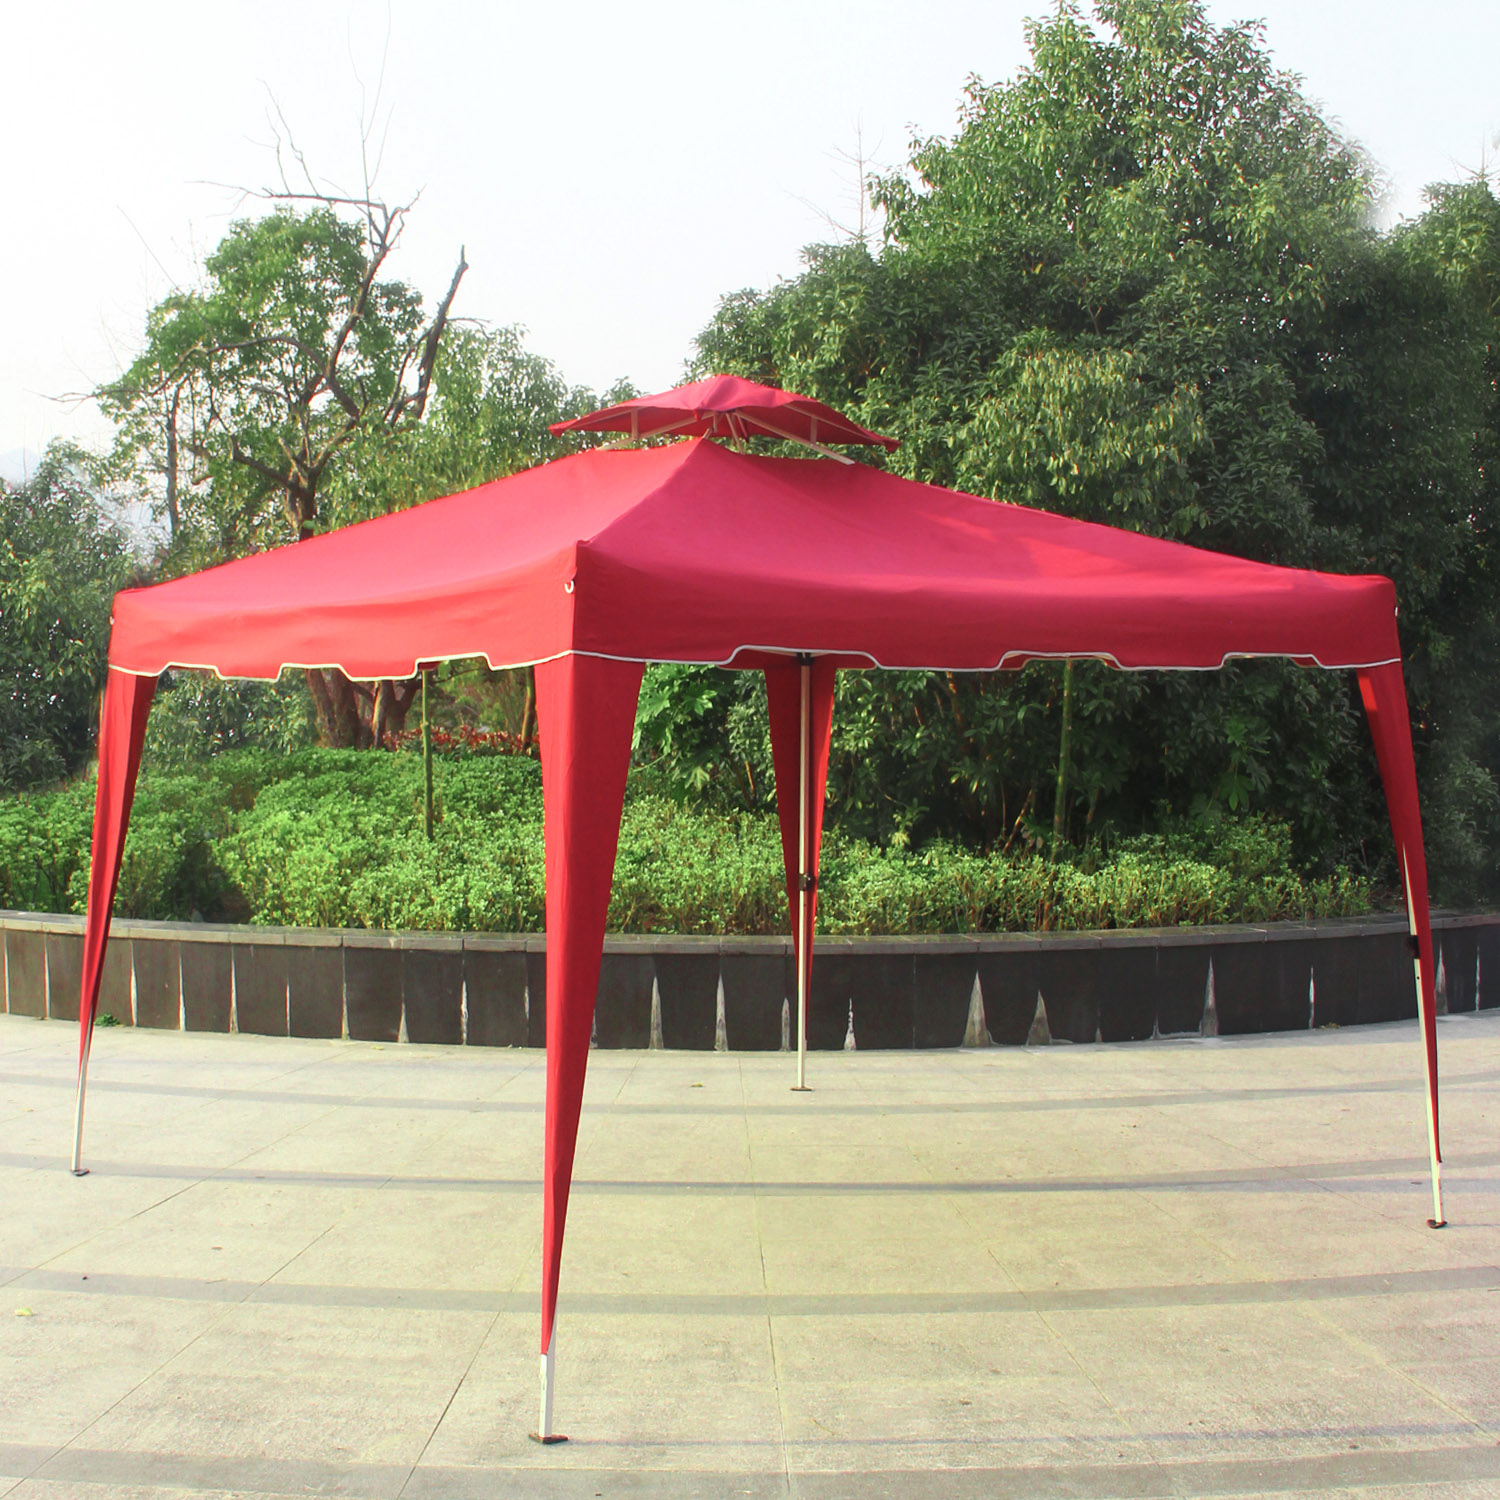 Cloud Mountain 10' x 10' Garden Pop Up Canopy Gazebo Patio Outdoor Double Roof Easy Set Up Canopy Tent with Carry Bag 5 Colors to Choose